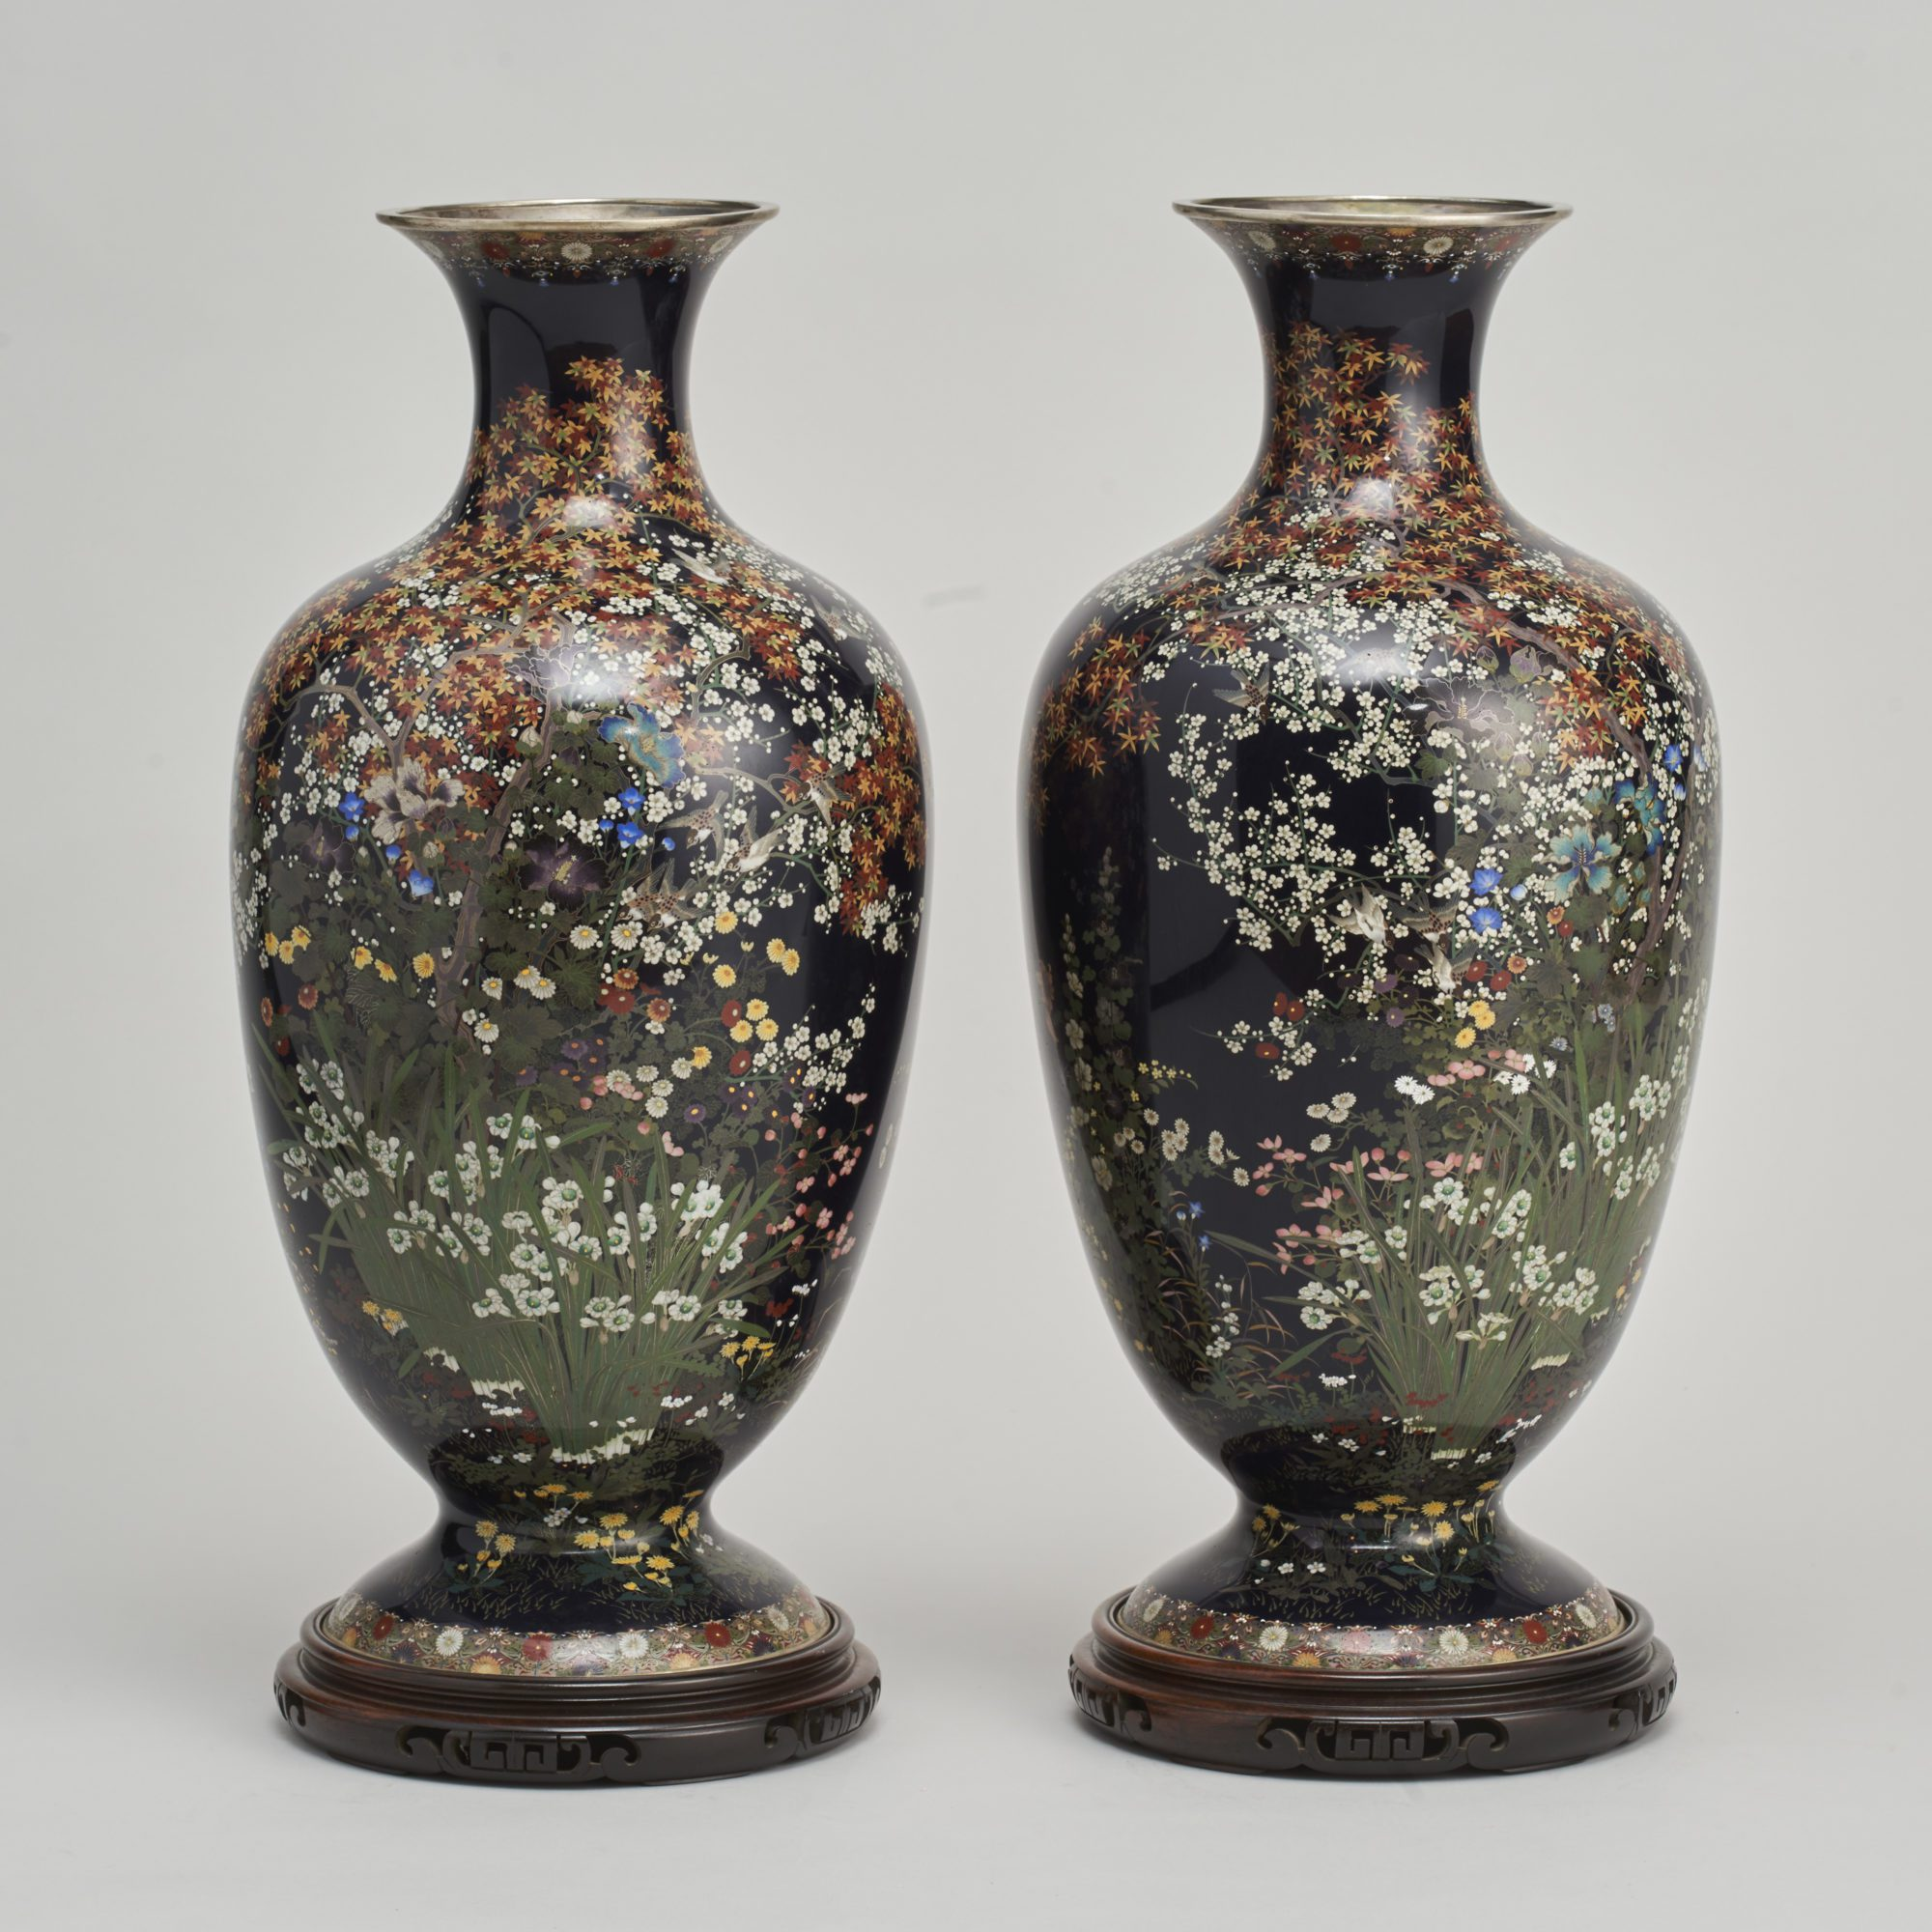 Cloisonne vases   A stunning pair of Japanese Meiji period silver wire enamel cloisonne vases